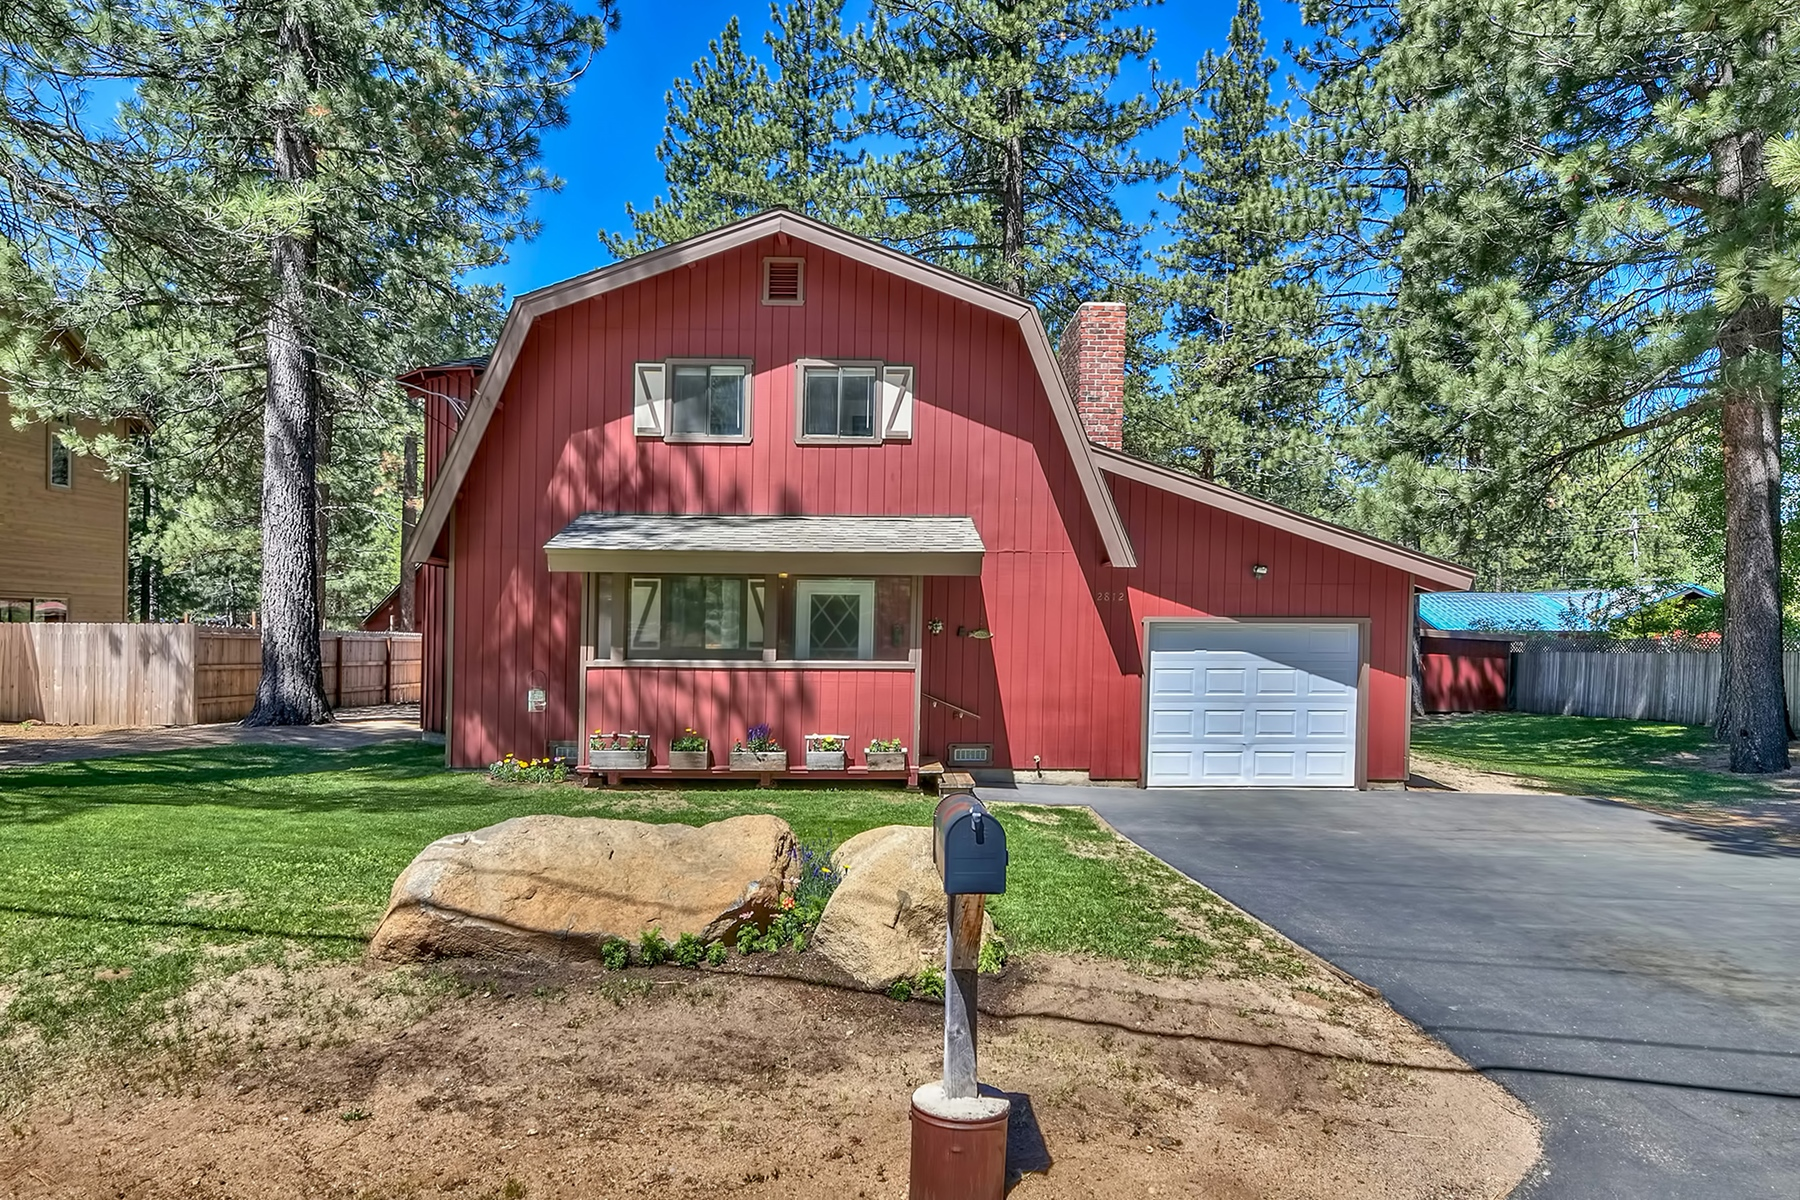 Property for Active at 2812 Santa Claus, South Lake Tahoe CA 96150 2812 Santa Claus South Lake Tahoe, California 96150 United States